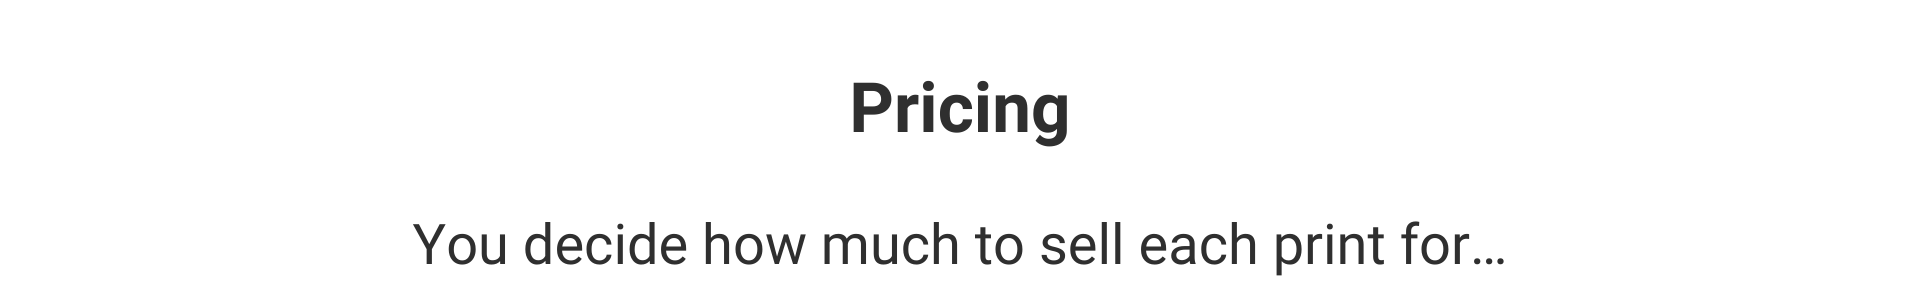 Pricing Strap Line - Your Art Butler